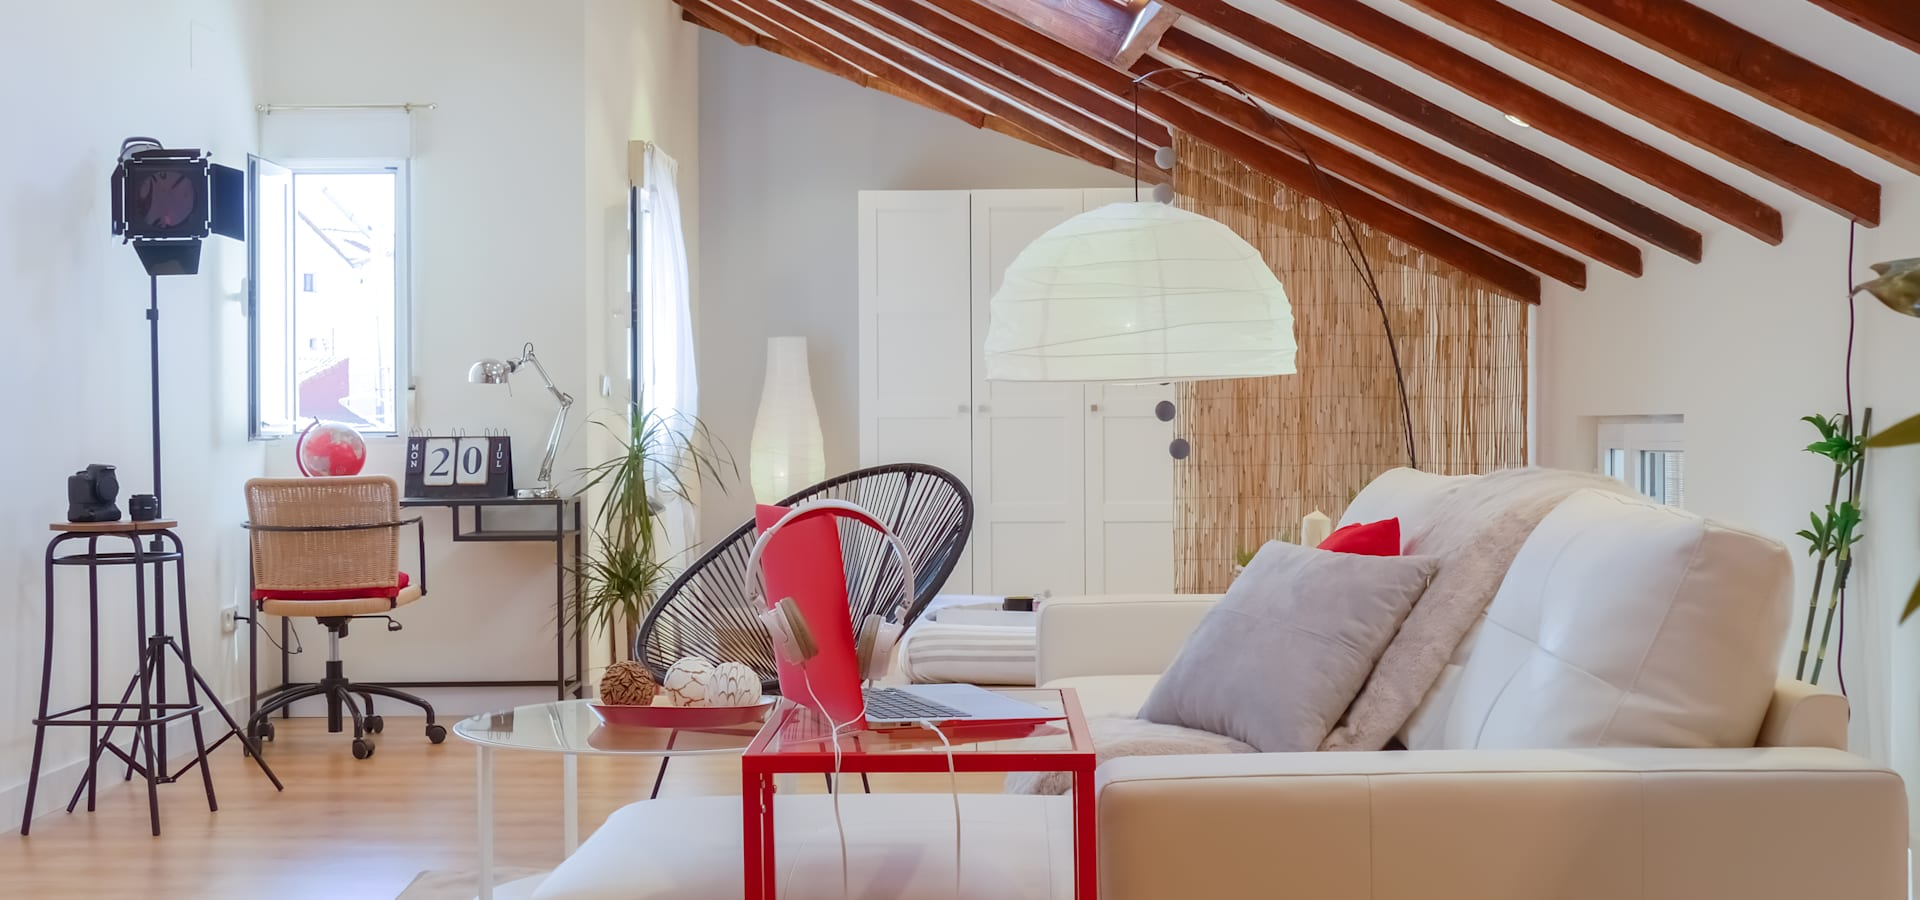 Asun tello home staging en madrid homify - Home staging madrid ...